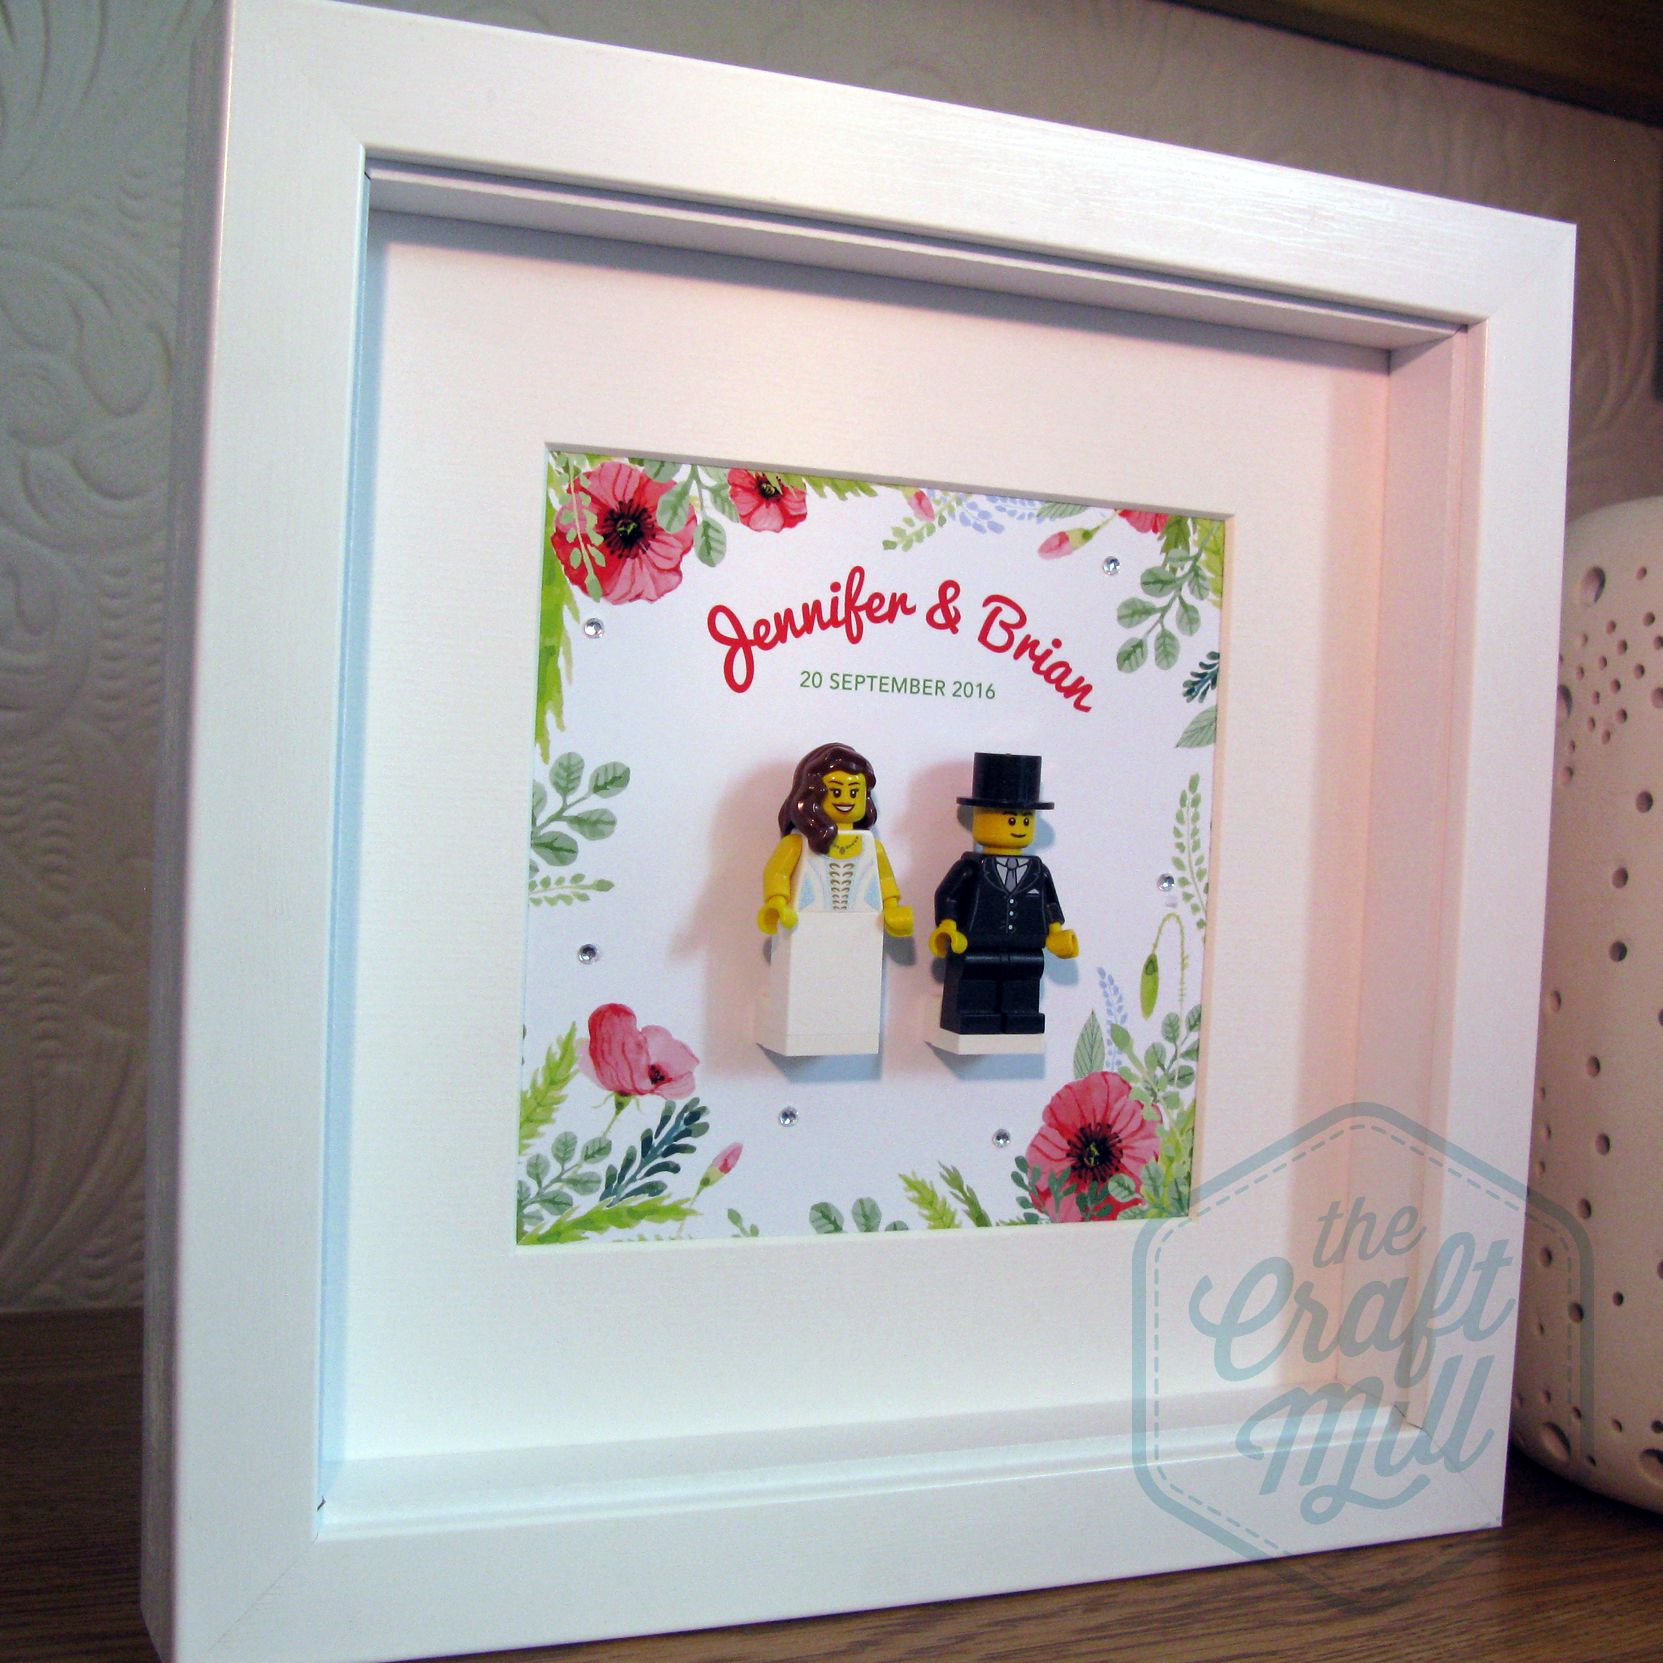 41 Unique Wedding Gift Ideas For Bride And Groom In 2020: Pin By Noelia Lopez Martínez On Legos